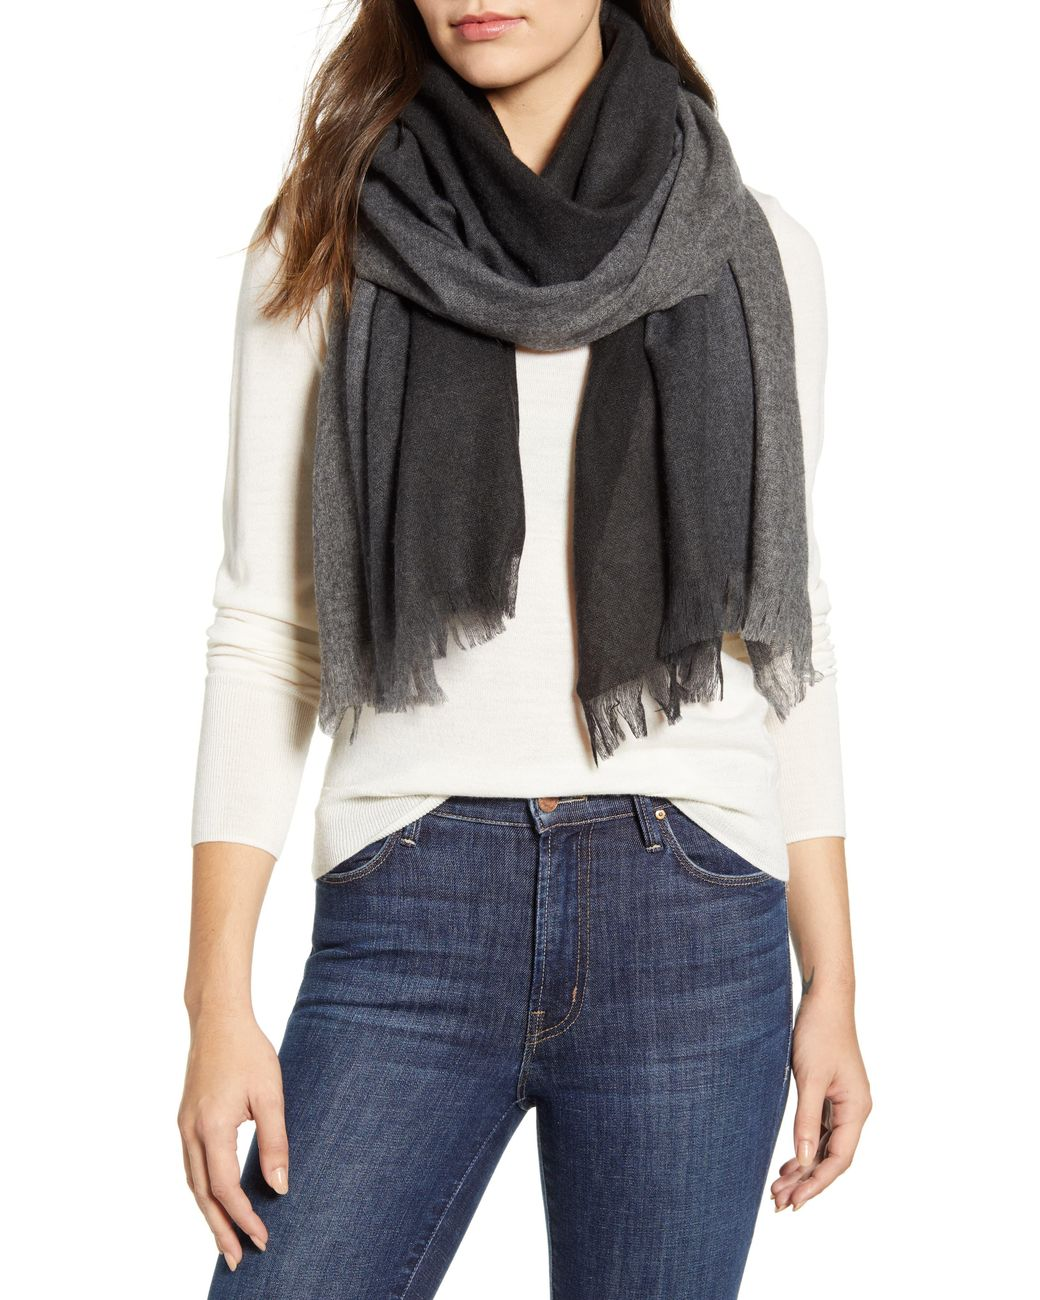 NORDSTROM Women/'s  Silk /& Cashmere Scarf Wrap Solid Ivory $99